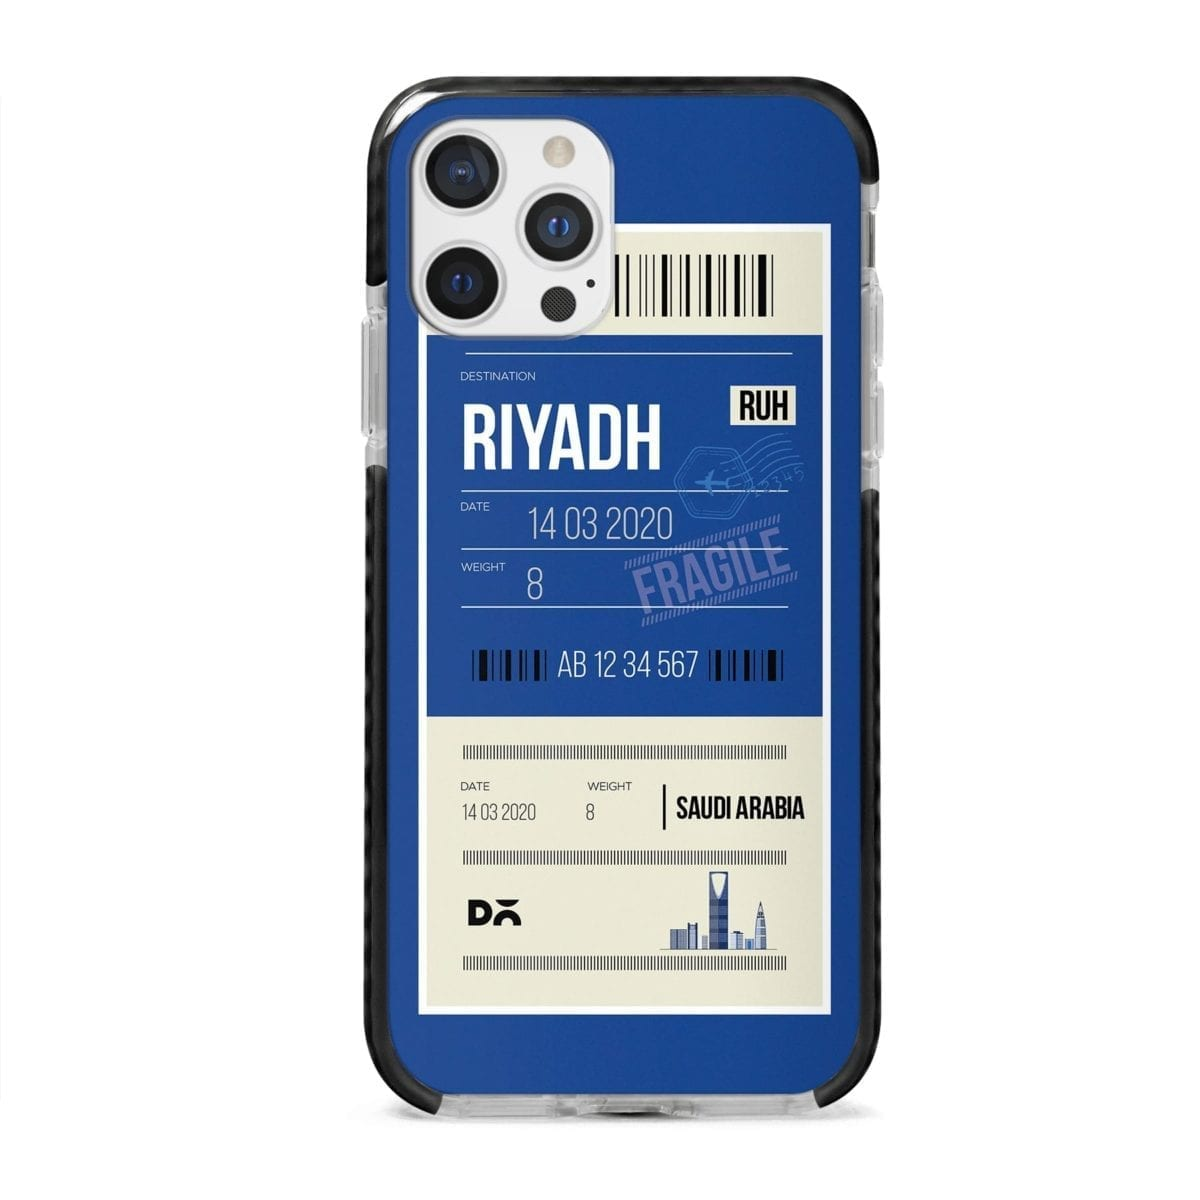 Riyadh City Tag Stride Case Cover for Apple iPhone 12 Pro and Apple iPhone 12 Pro Max with great design and shock proof | Klippik | Online Shopping | Kuwait UAE Saudi